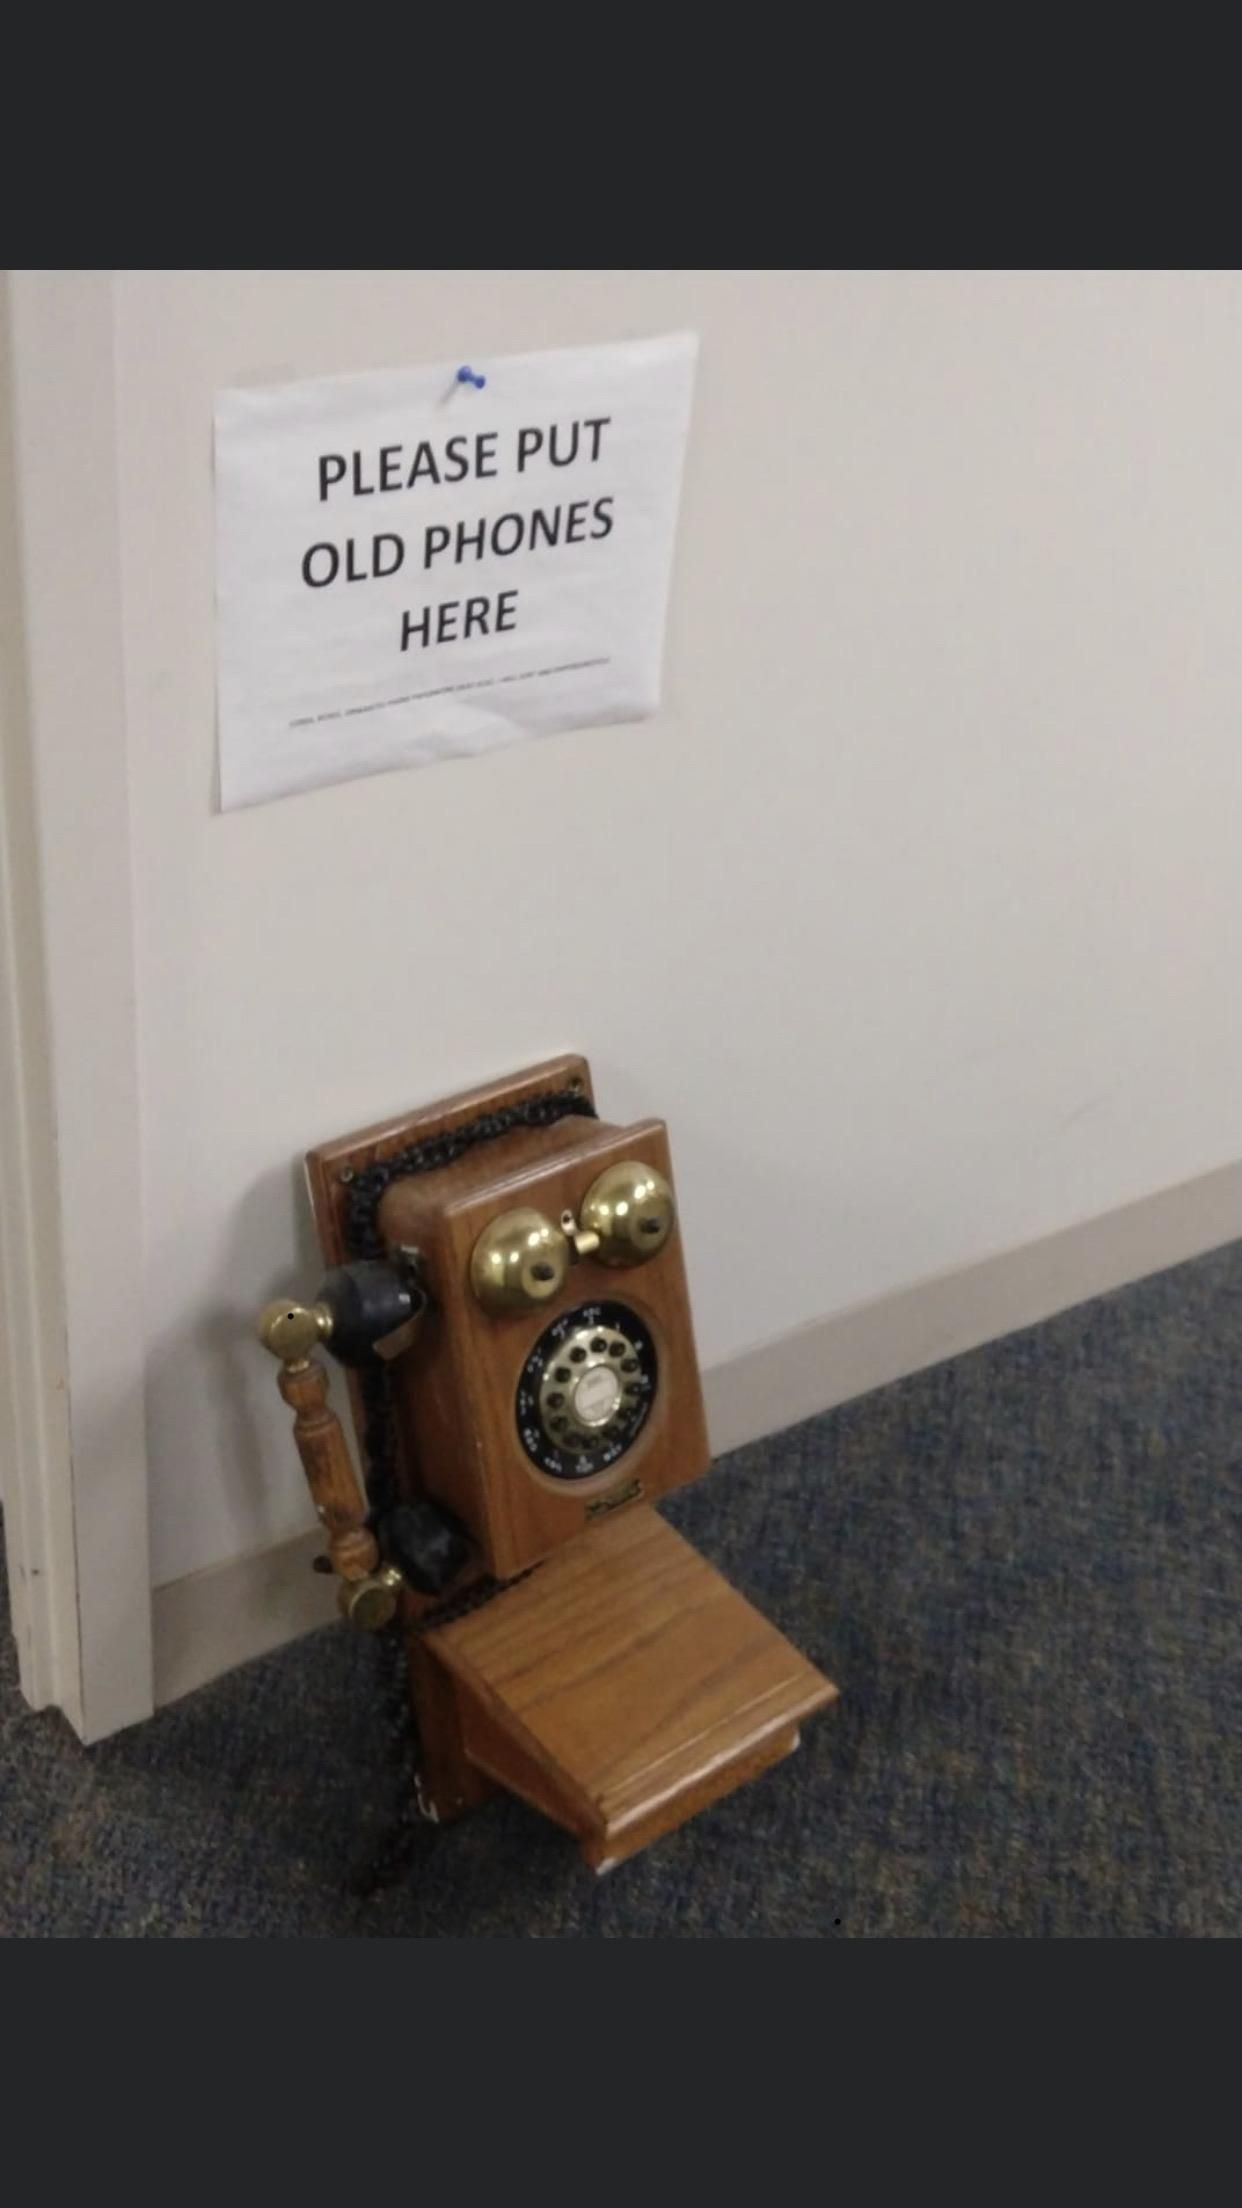 We upgraded our phone system at work and got new phones. All the old phones were supposed to be left in the hallway under this sign. Someone brought in this.